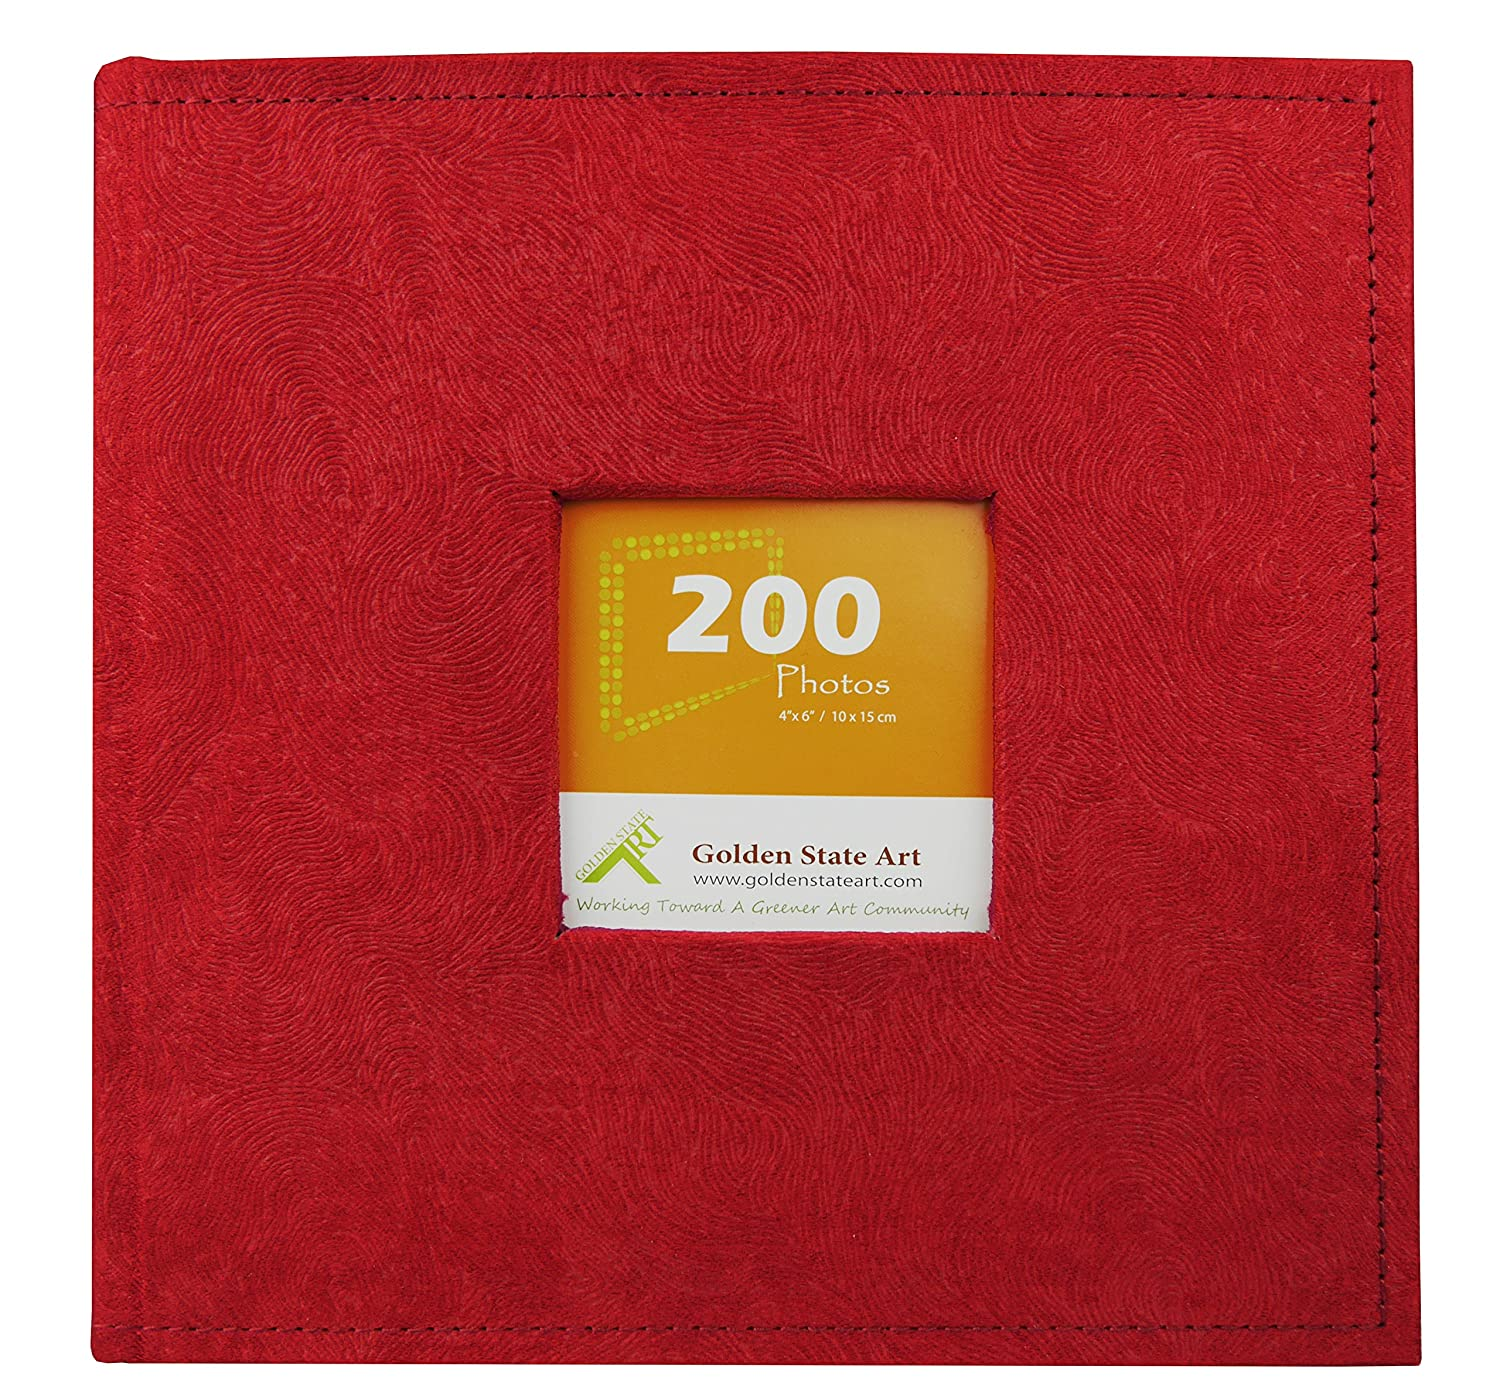 Golden State Art Photo Album Red Suede Cover, Holds 200 4x6 Pictures V1-Cl55058-9 R